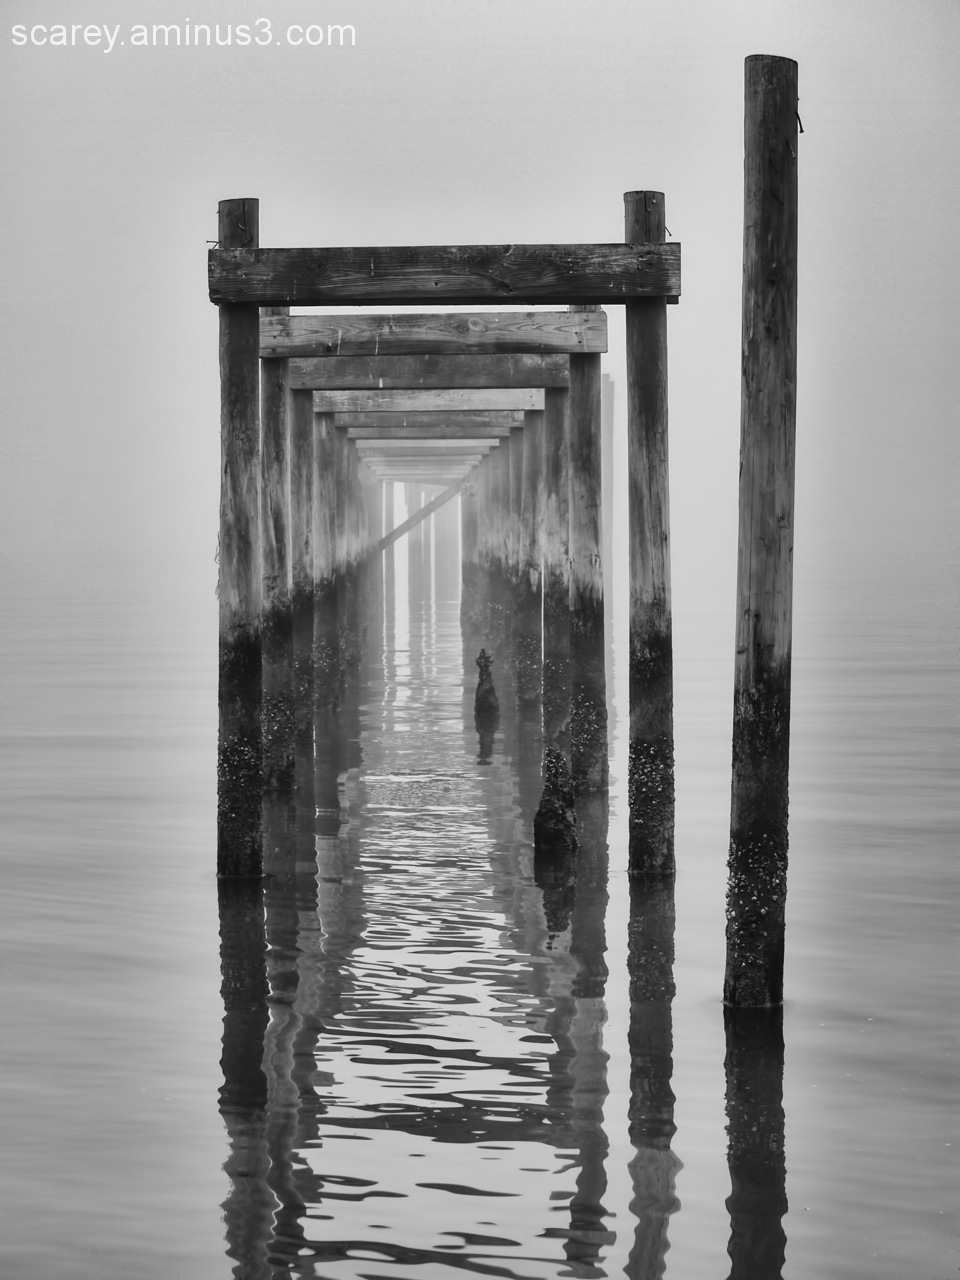 Old pier along Mobile Bay, Alabama in fog